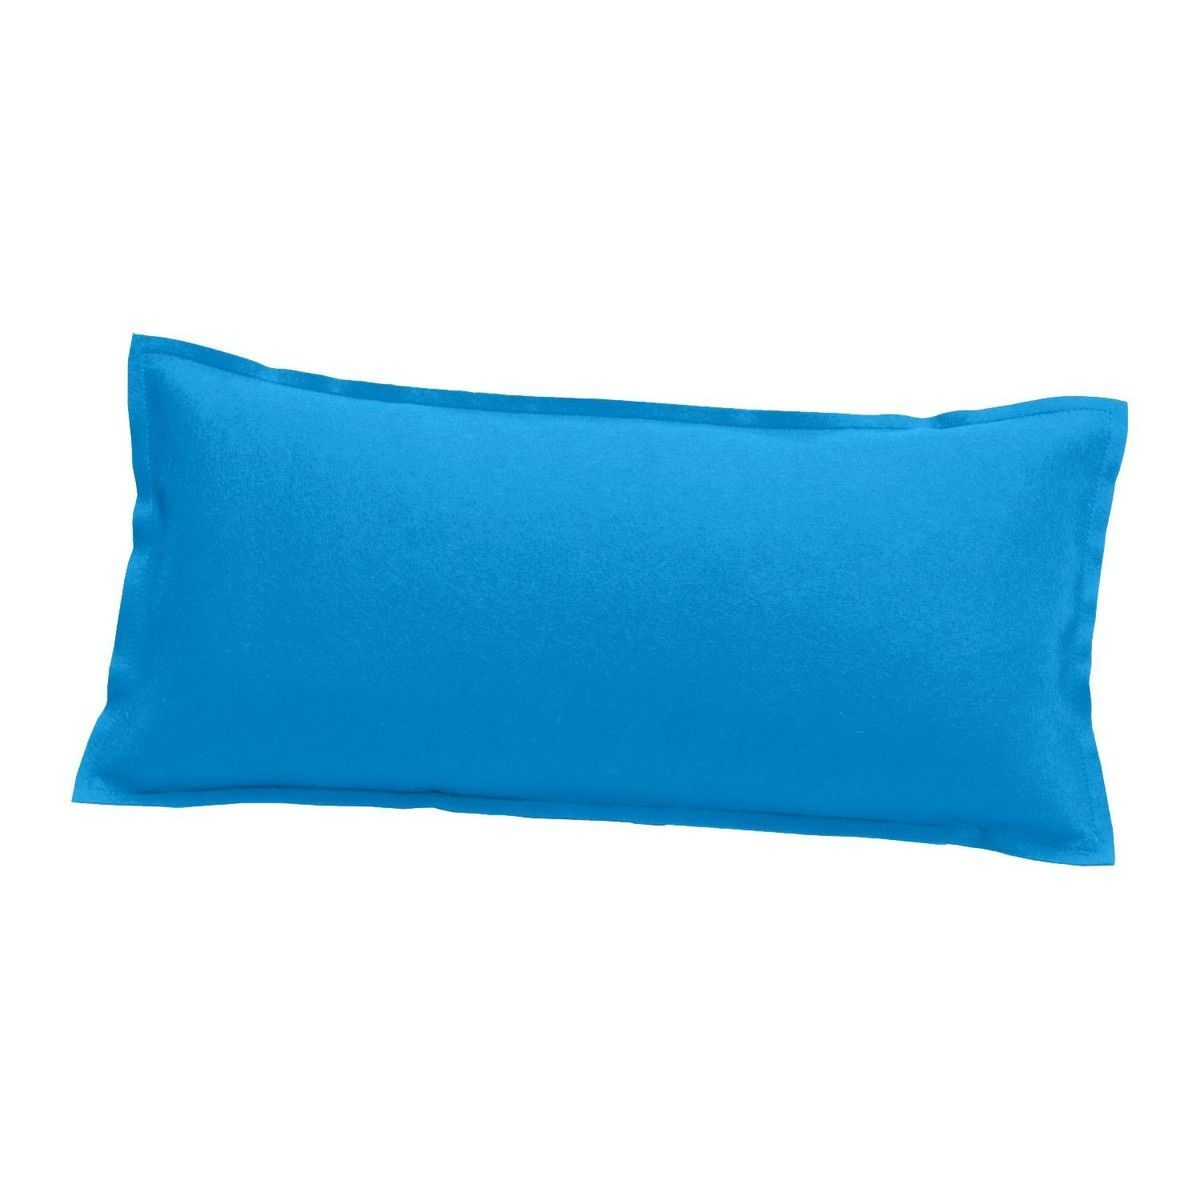 Petrol Kissen Kissen Petrol Muuto Mingle Cushion Petrol Two Cushions